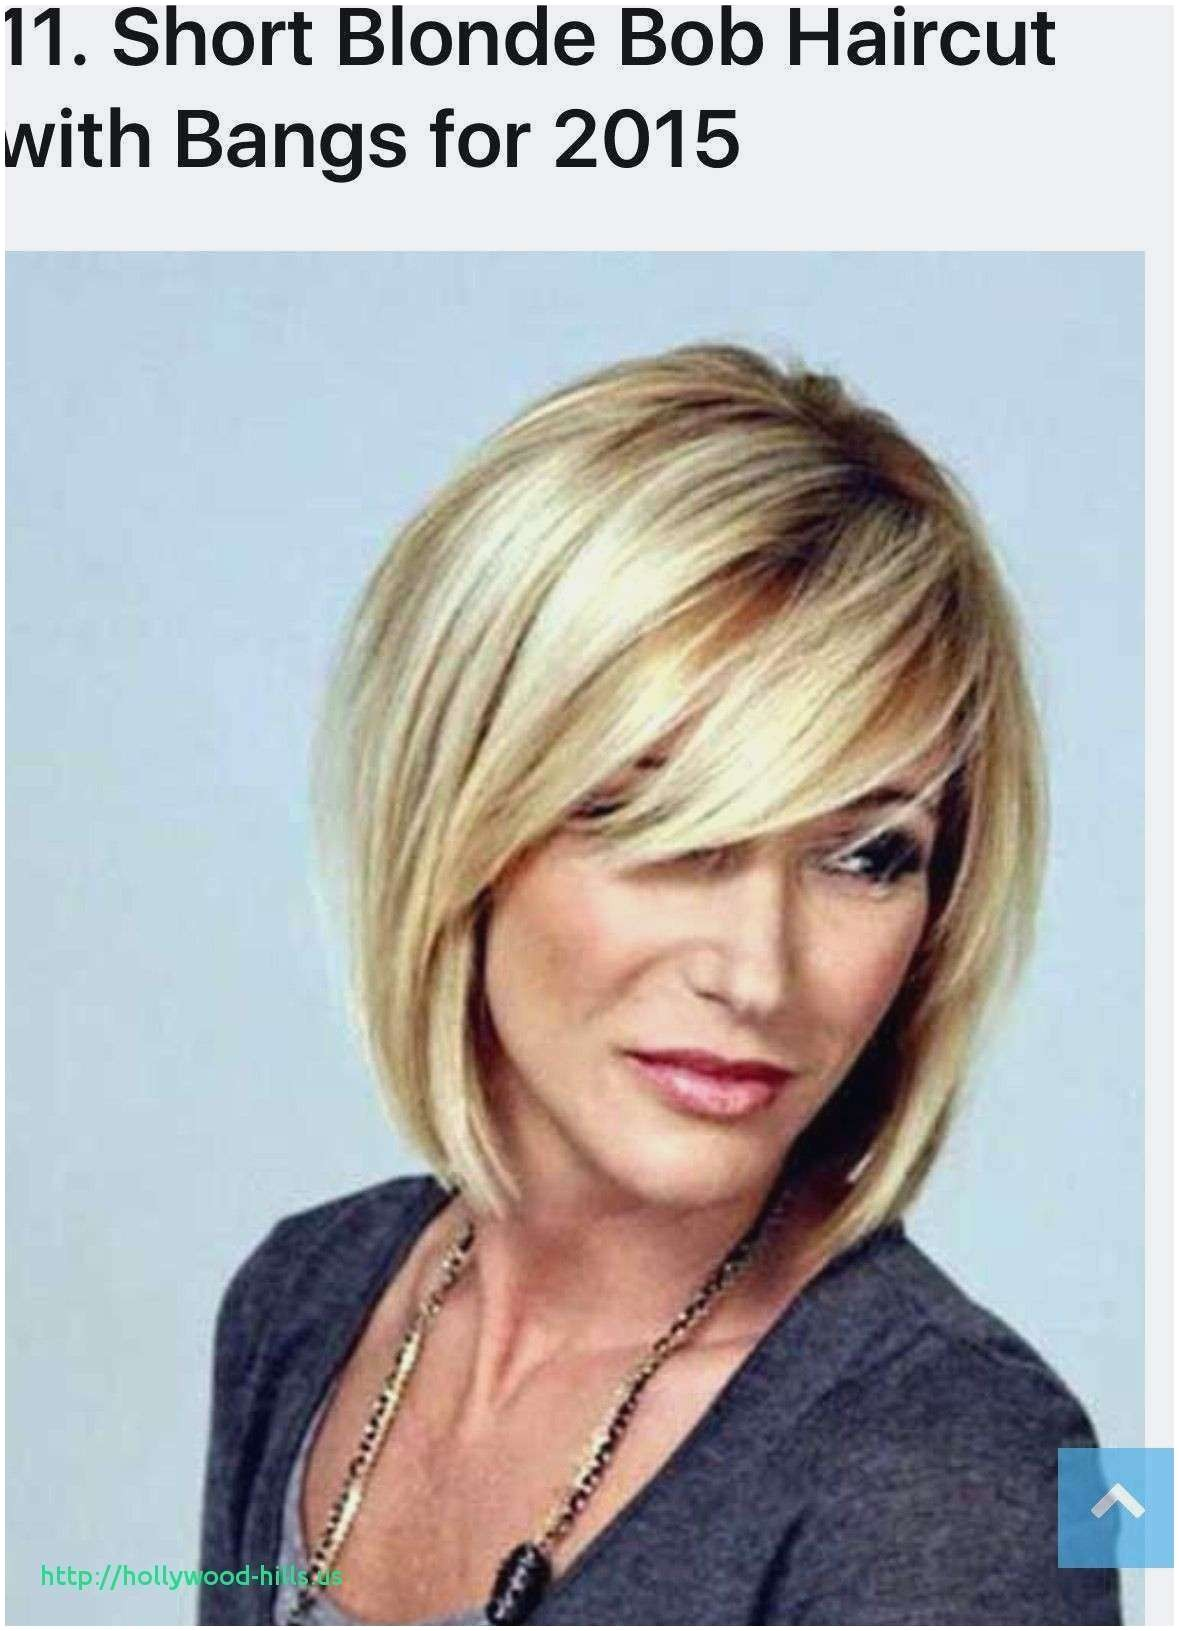 Awesome Chin Length Hairstyles With Bangs 2019 Medium Length Hairstyles New For Option Medium Length Haircuts 2019